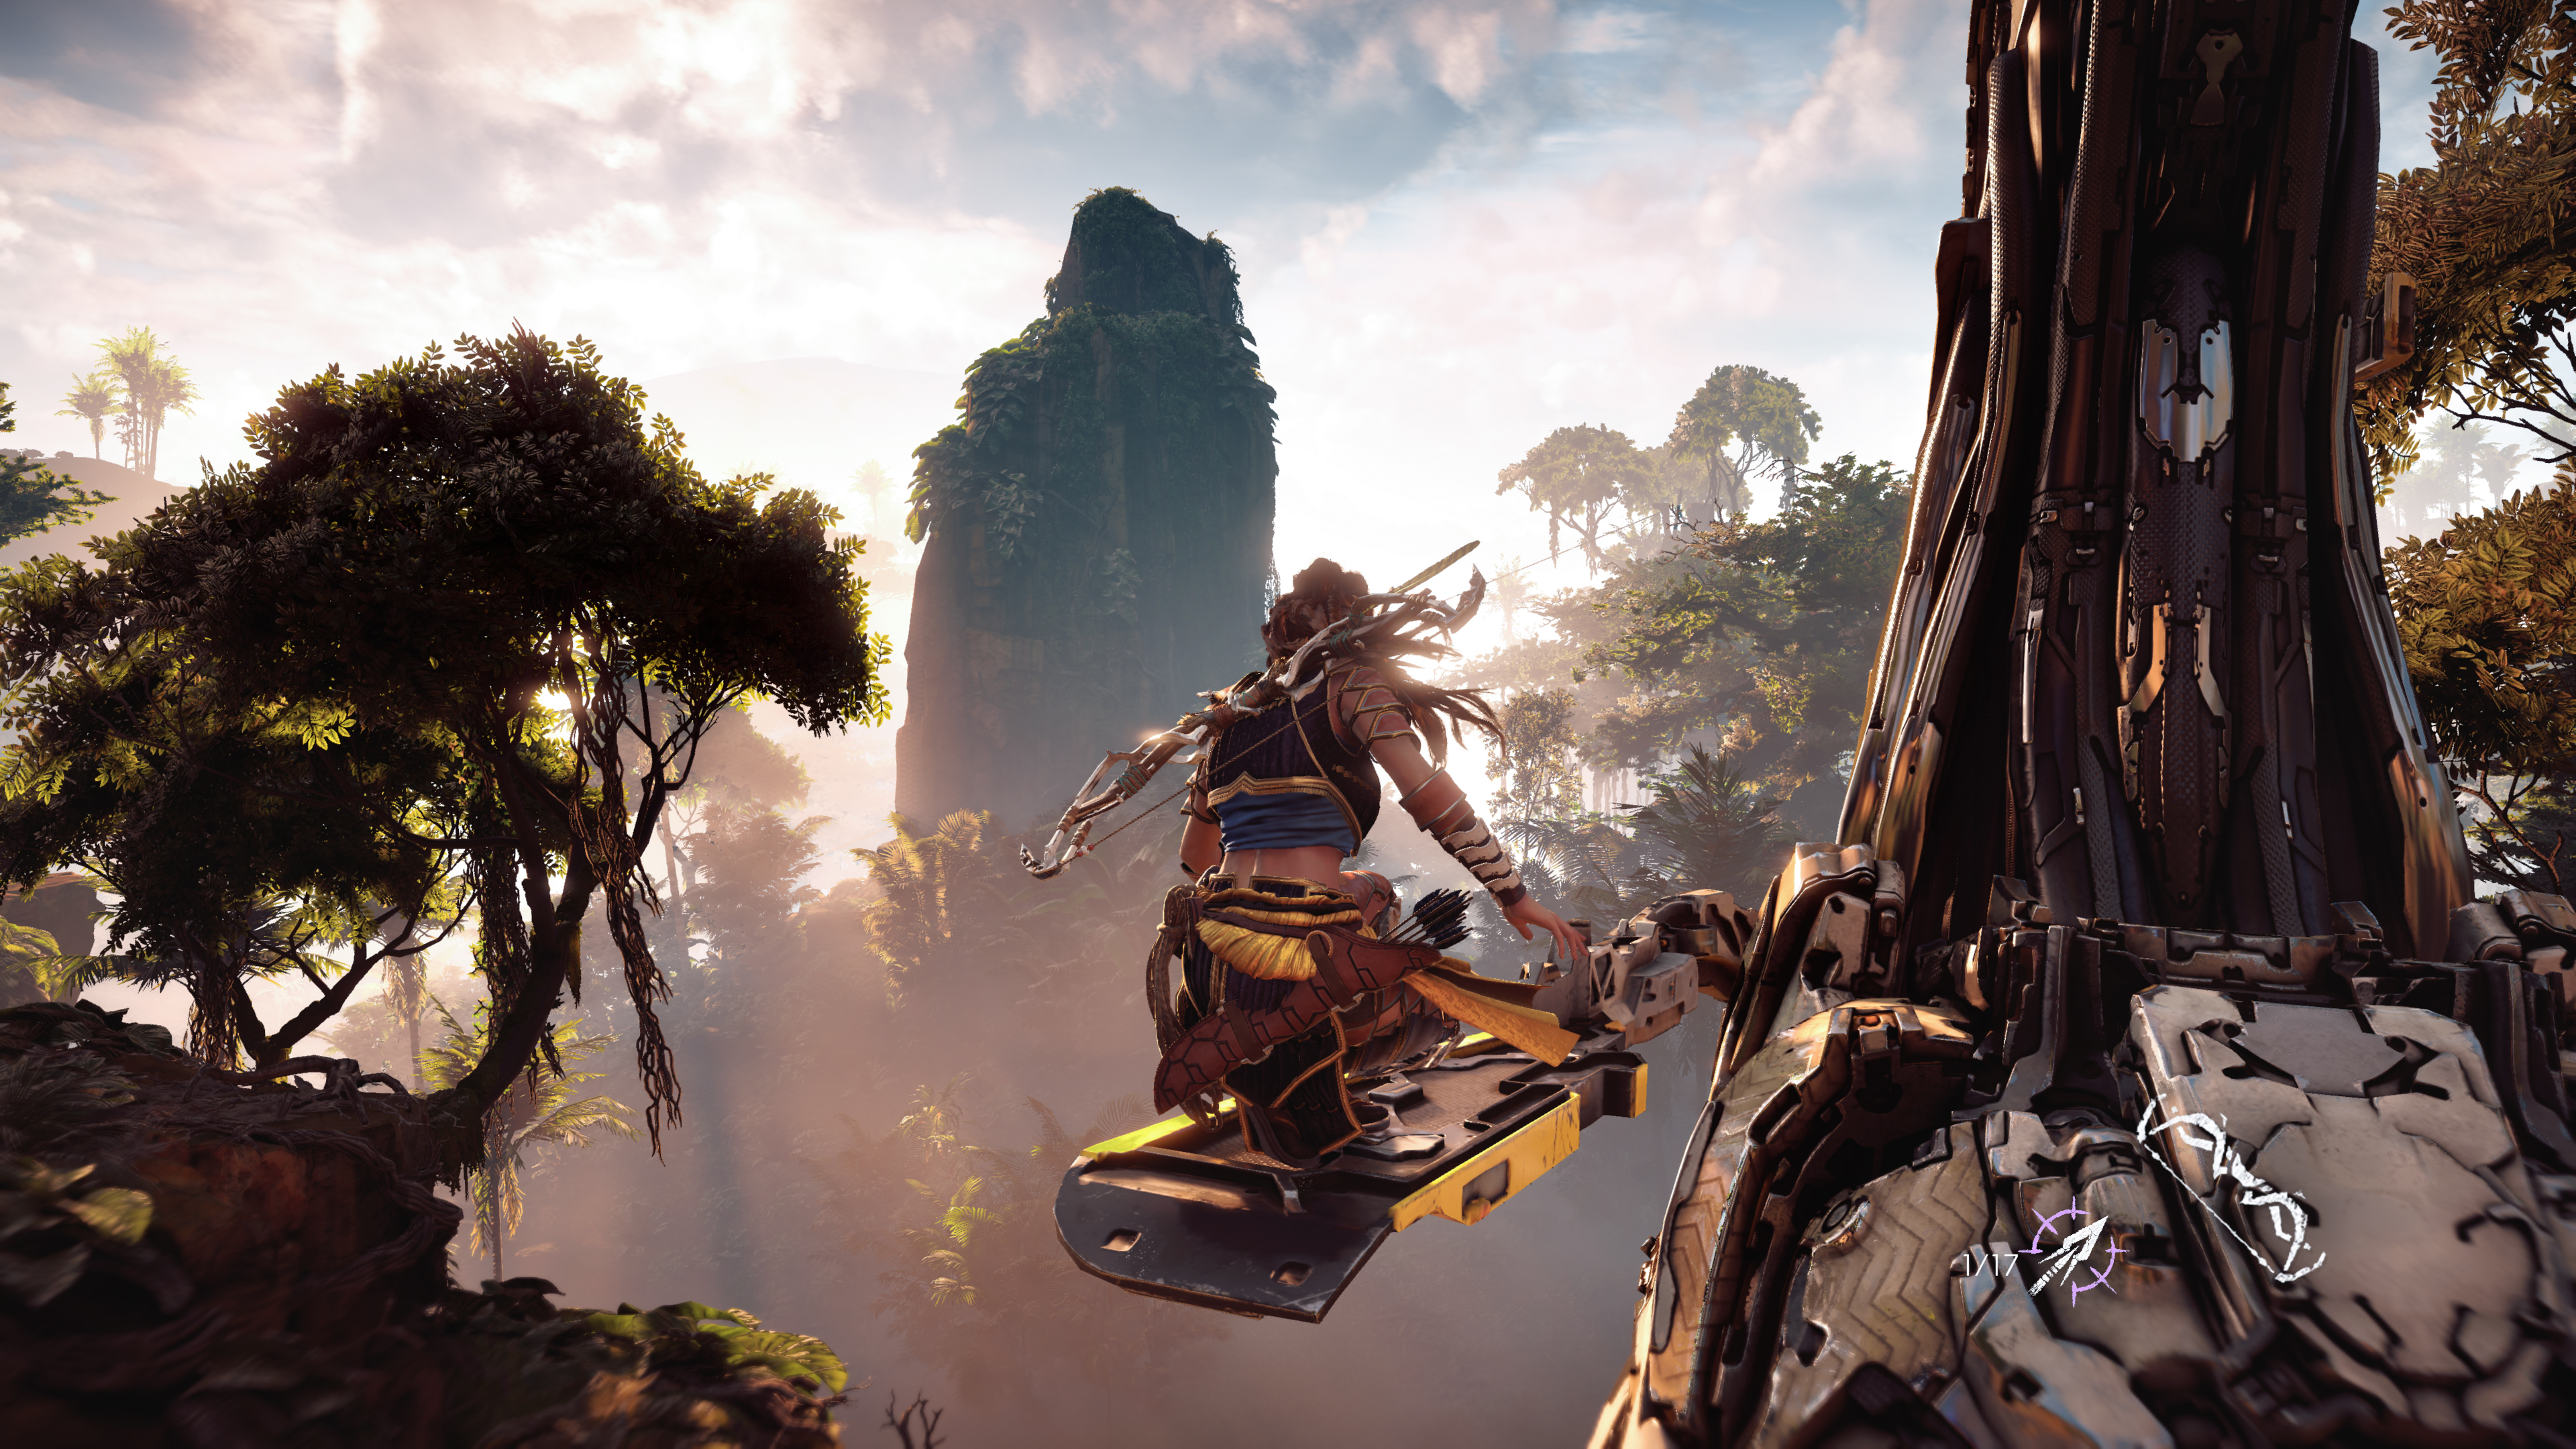 Horizon Zero Dawn Karte.Horizon Zero Dawn Get Every Collectible Location With These Maps